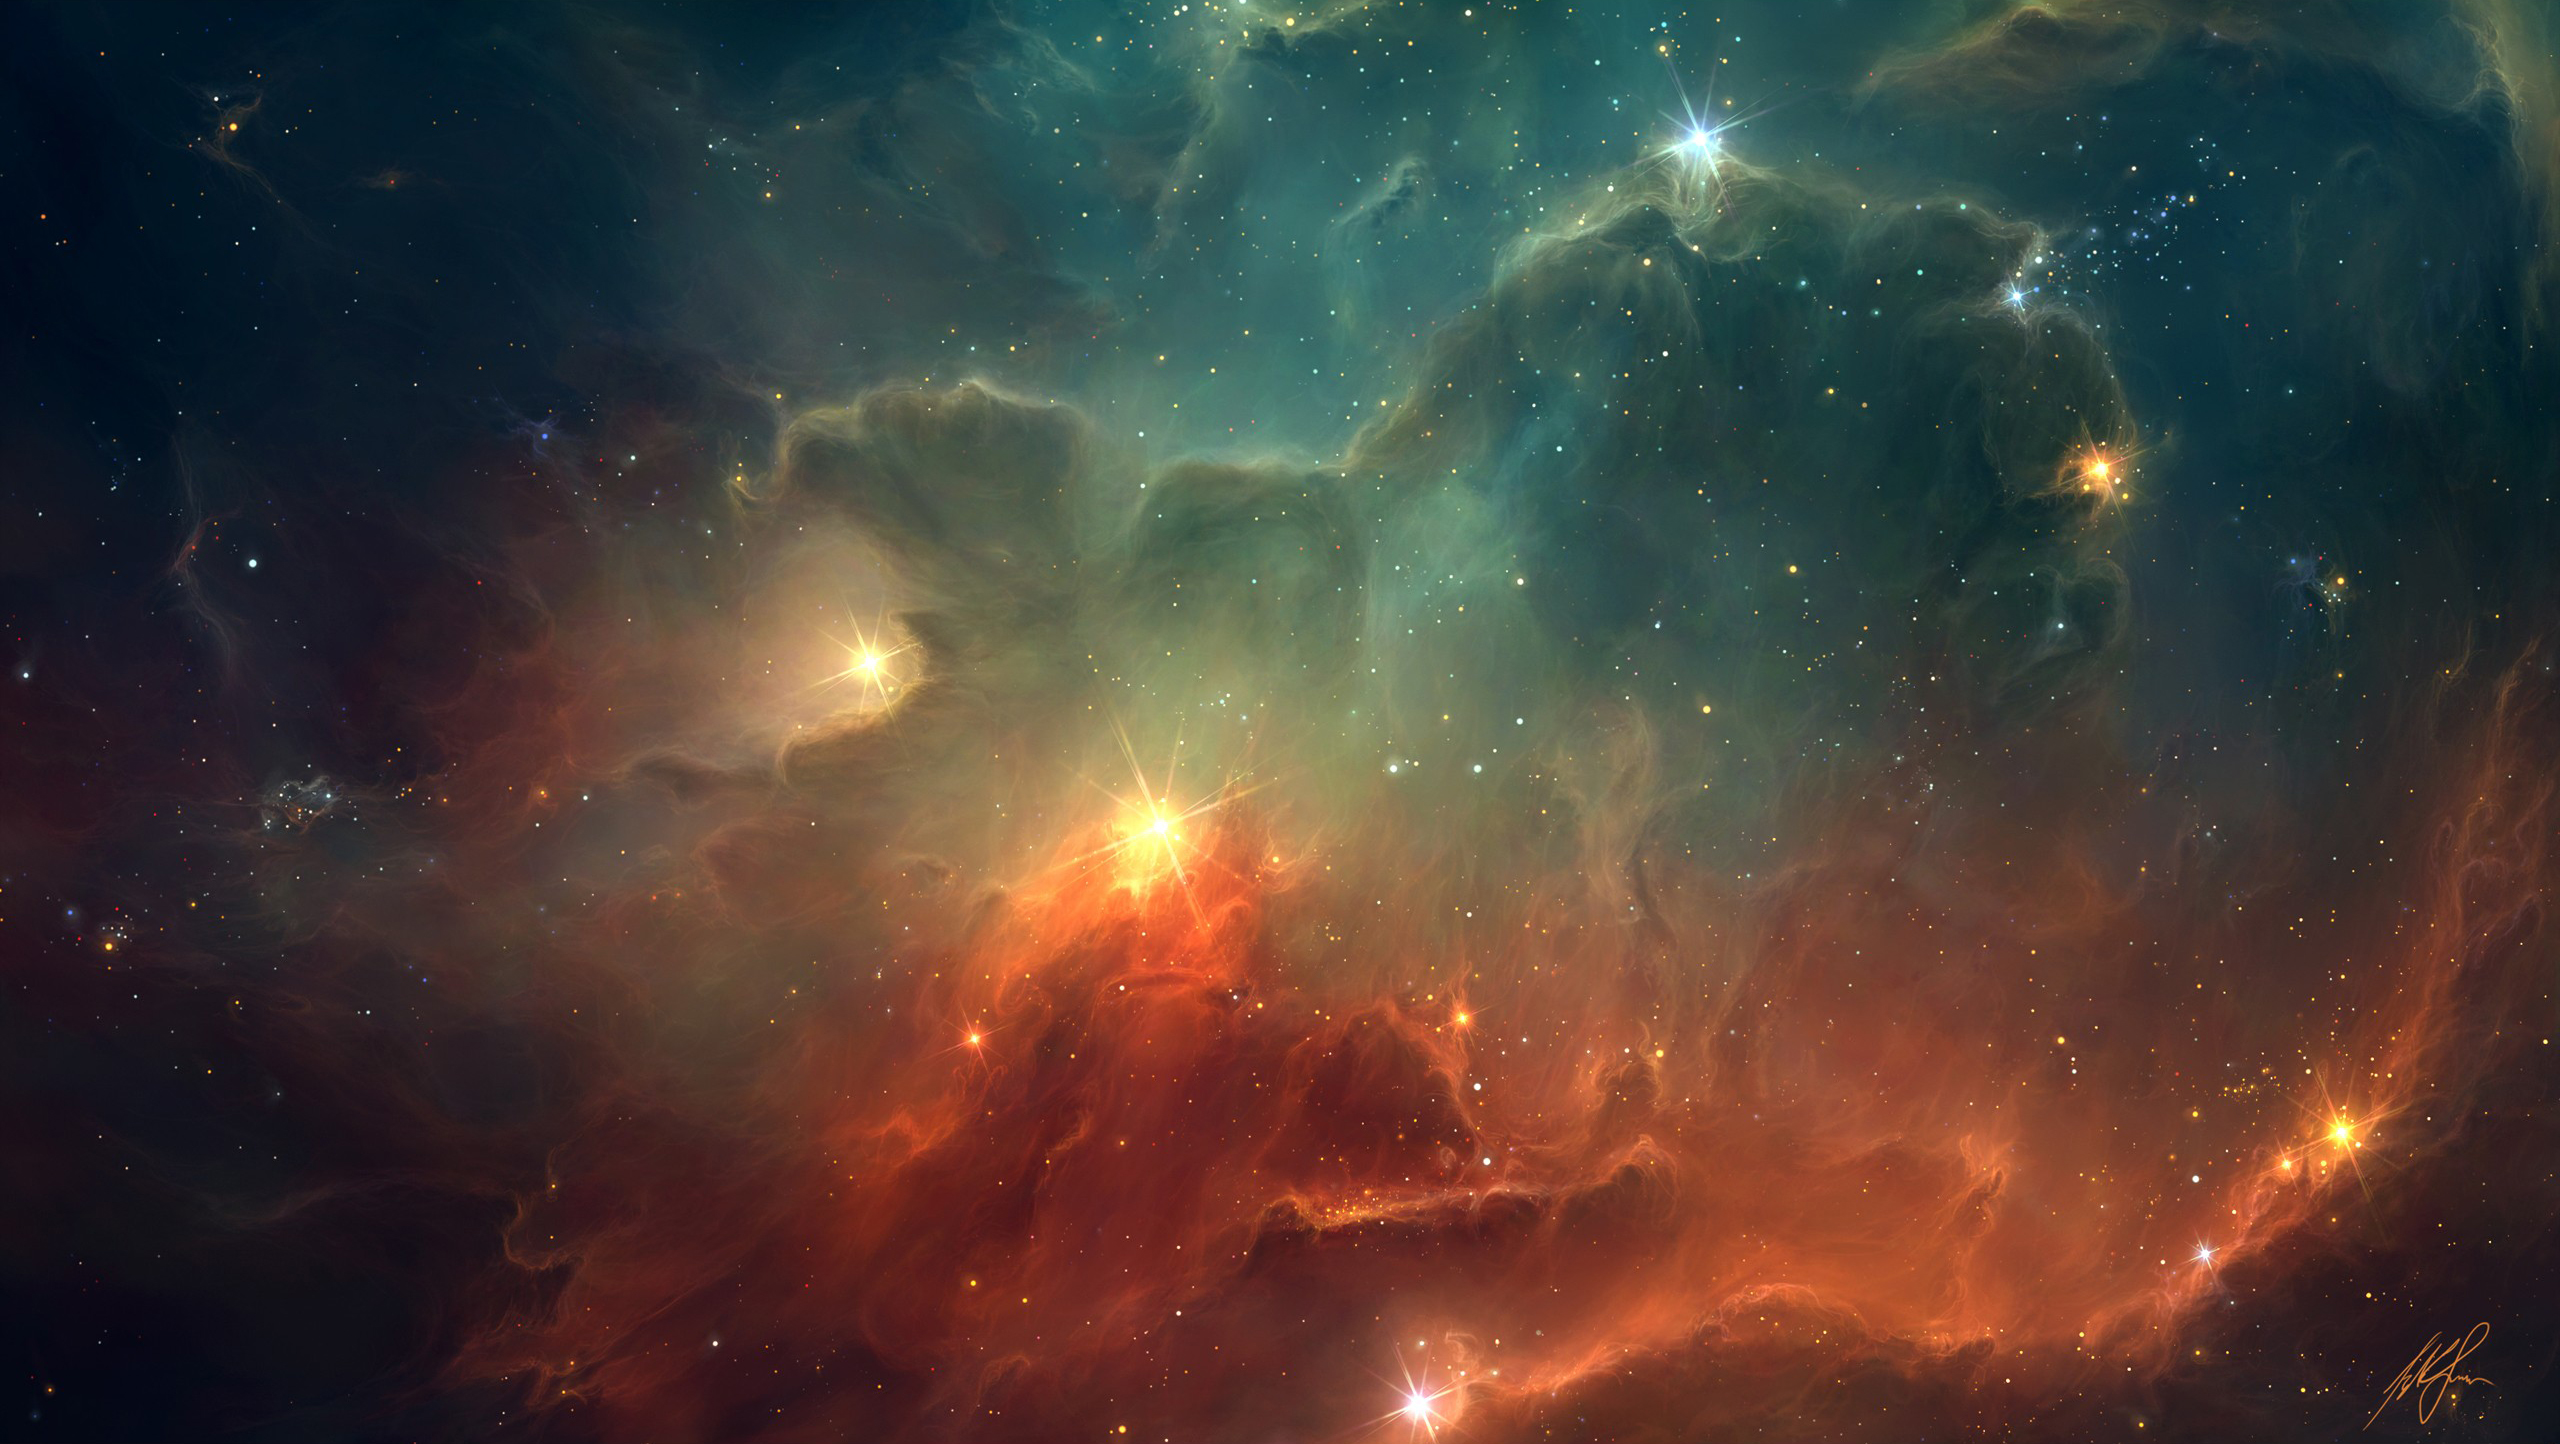 Daily Wallpaper Space Art